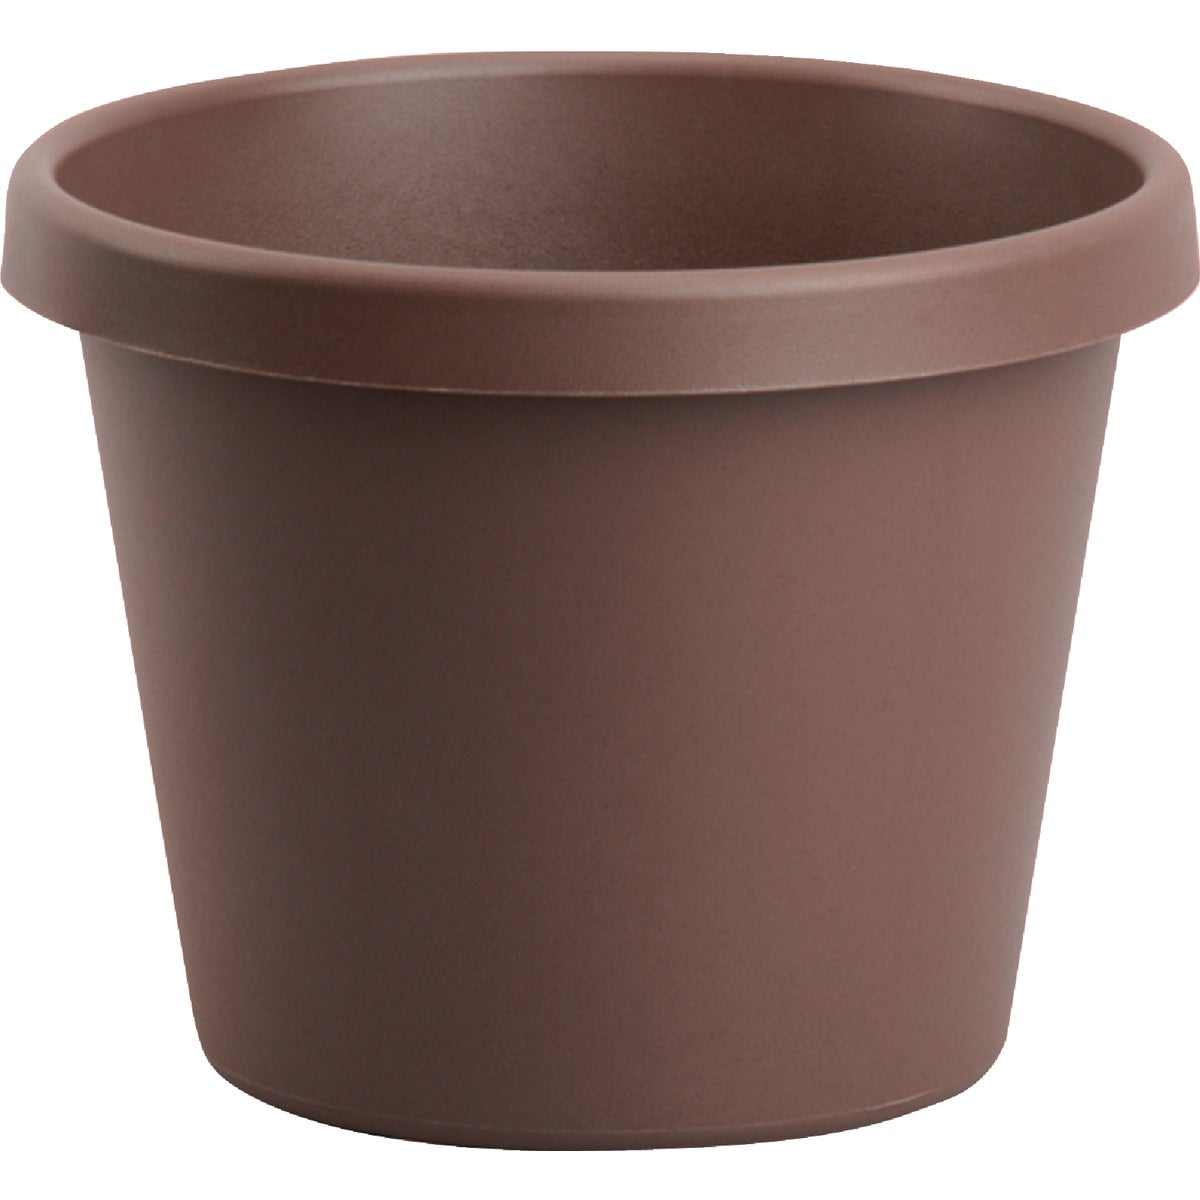 "20"" CHOCOLATE POLY POT - 450205-1001 by Fiskars Brands Inc"